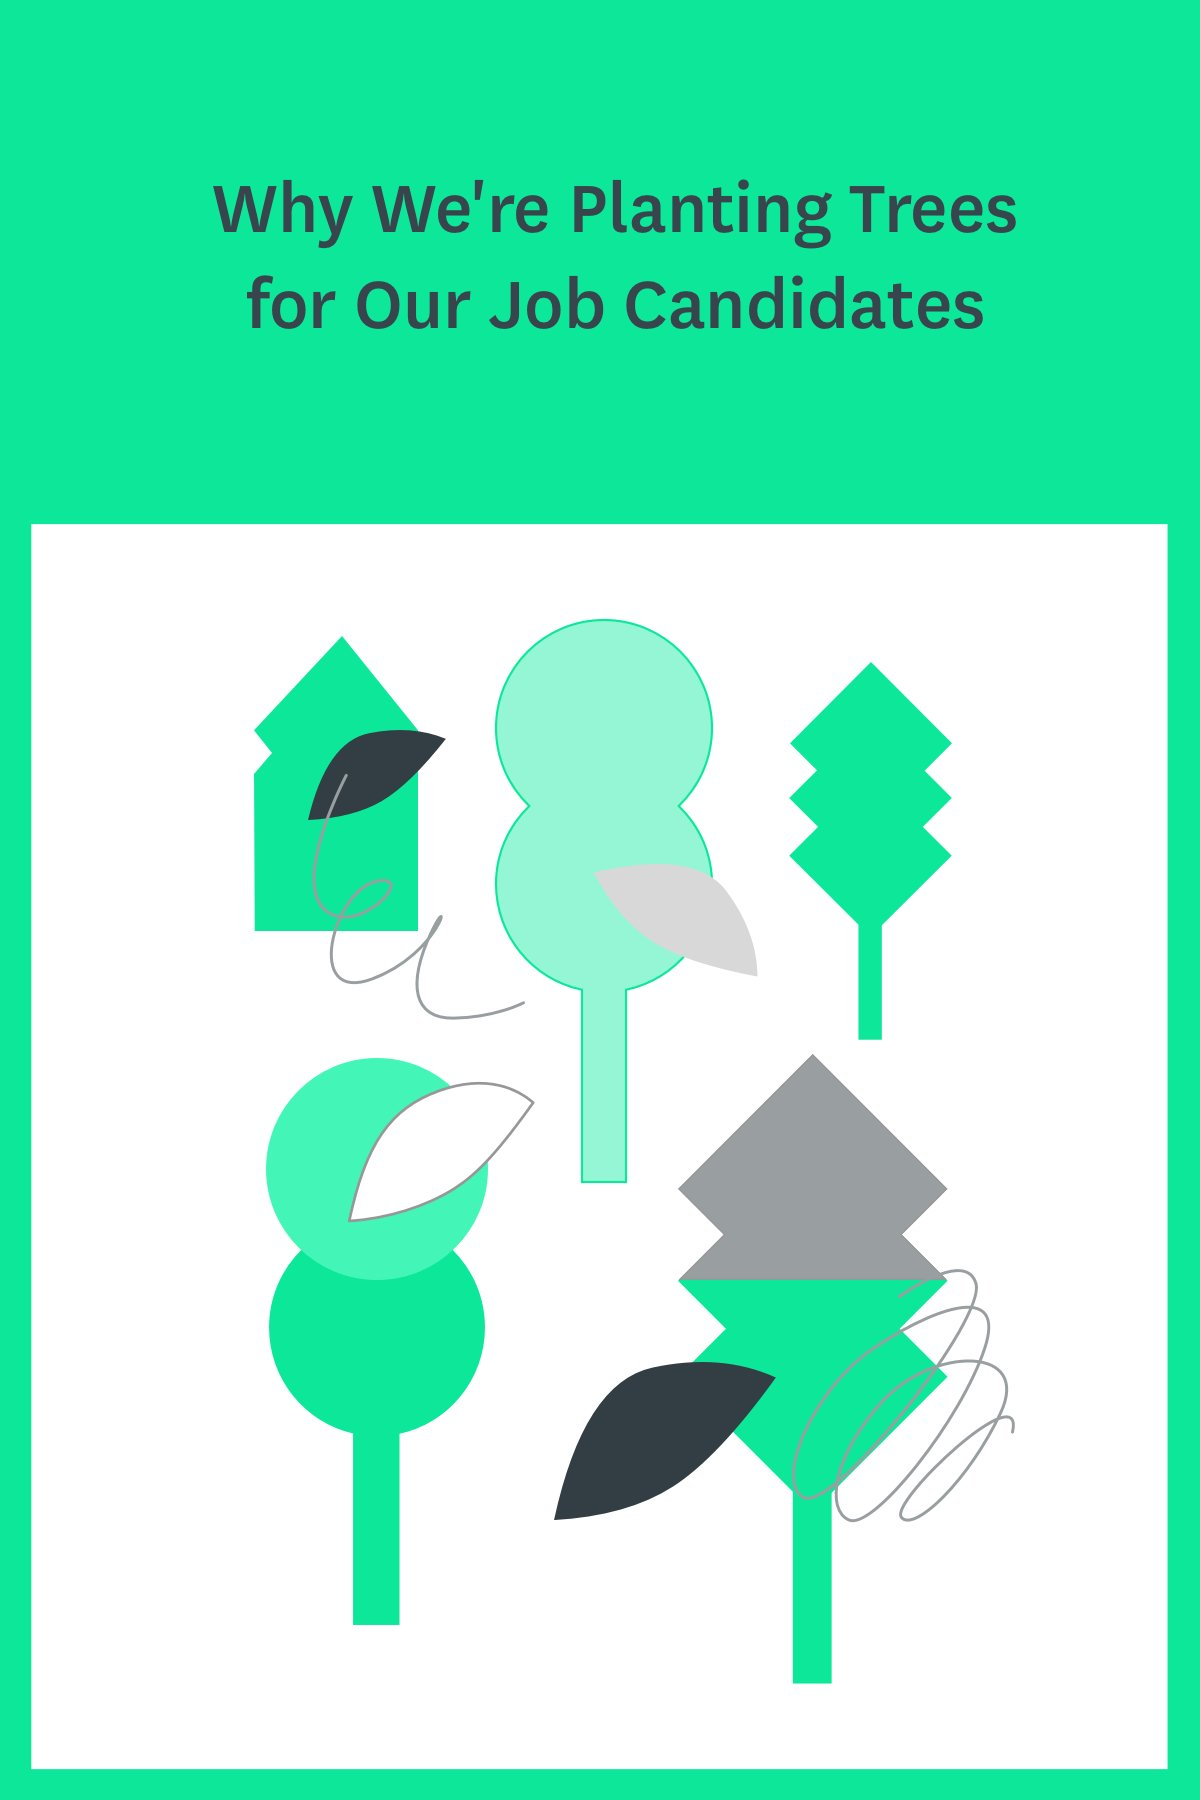 That's right! If you apply for a job at Teamweek using our cool quiz-based application system and you score high enough, we'll plant a tree in your honor. Click through to find out more and see what jobs we're hiring for.